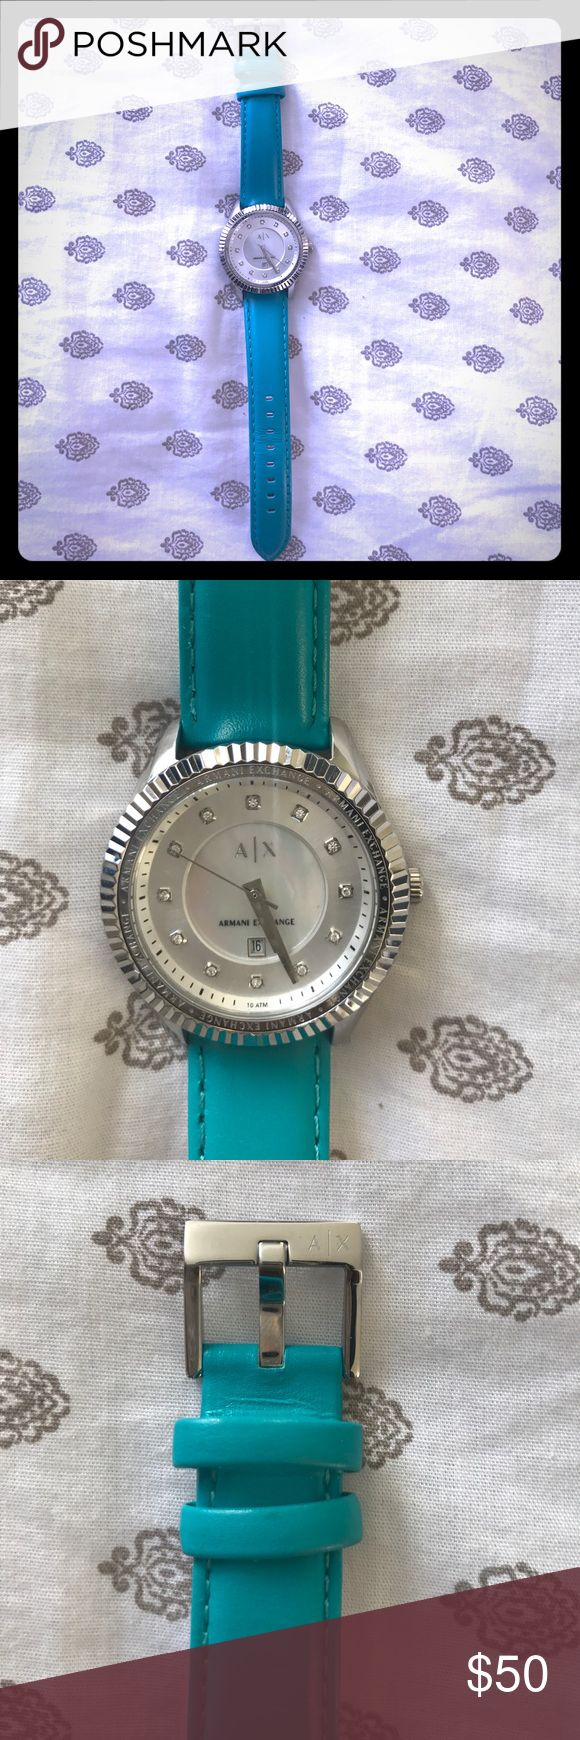 Armani Exchange Watch Armani Exchange Watch. Turquoise Color. Worn only twice. Minor stain inside the band of Watch. Looks like new! A/X Armani Exchange Accessories Watches